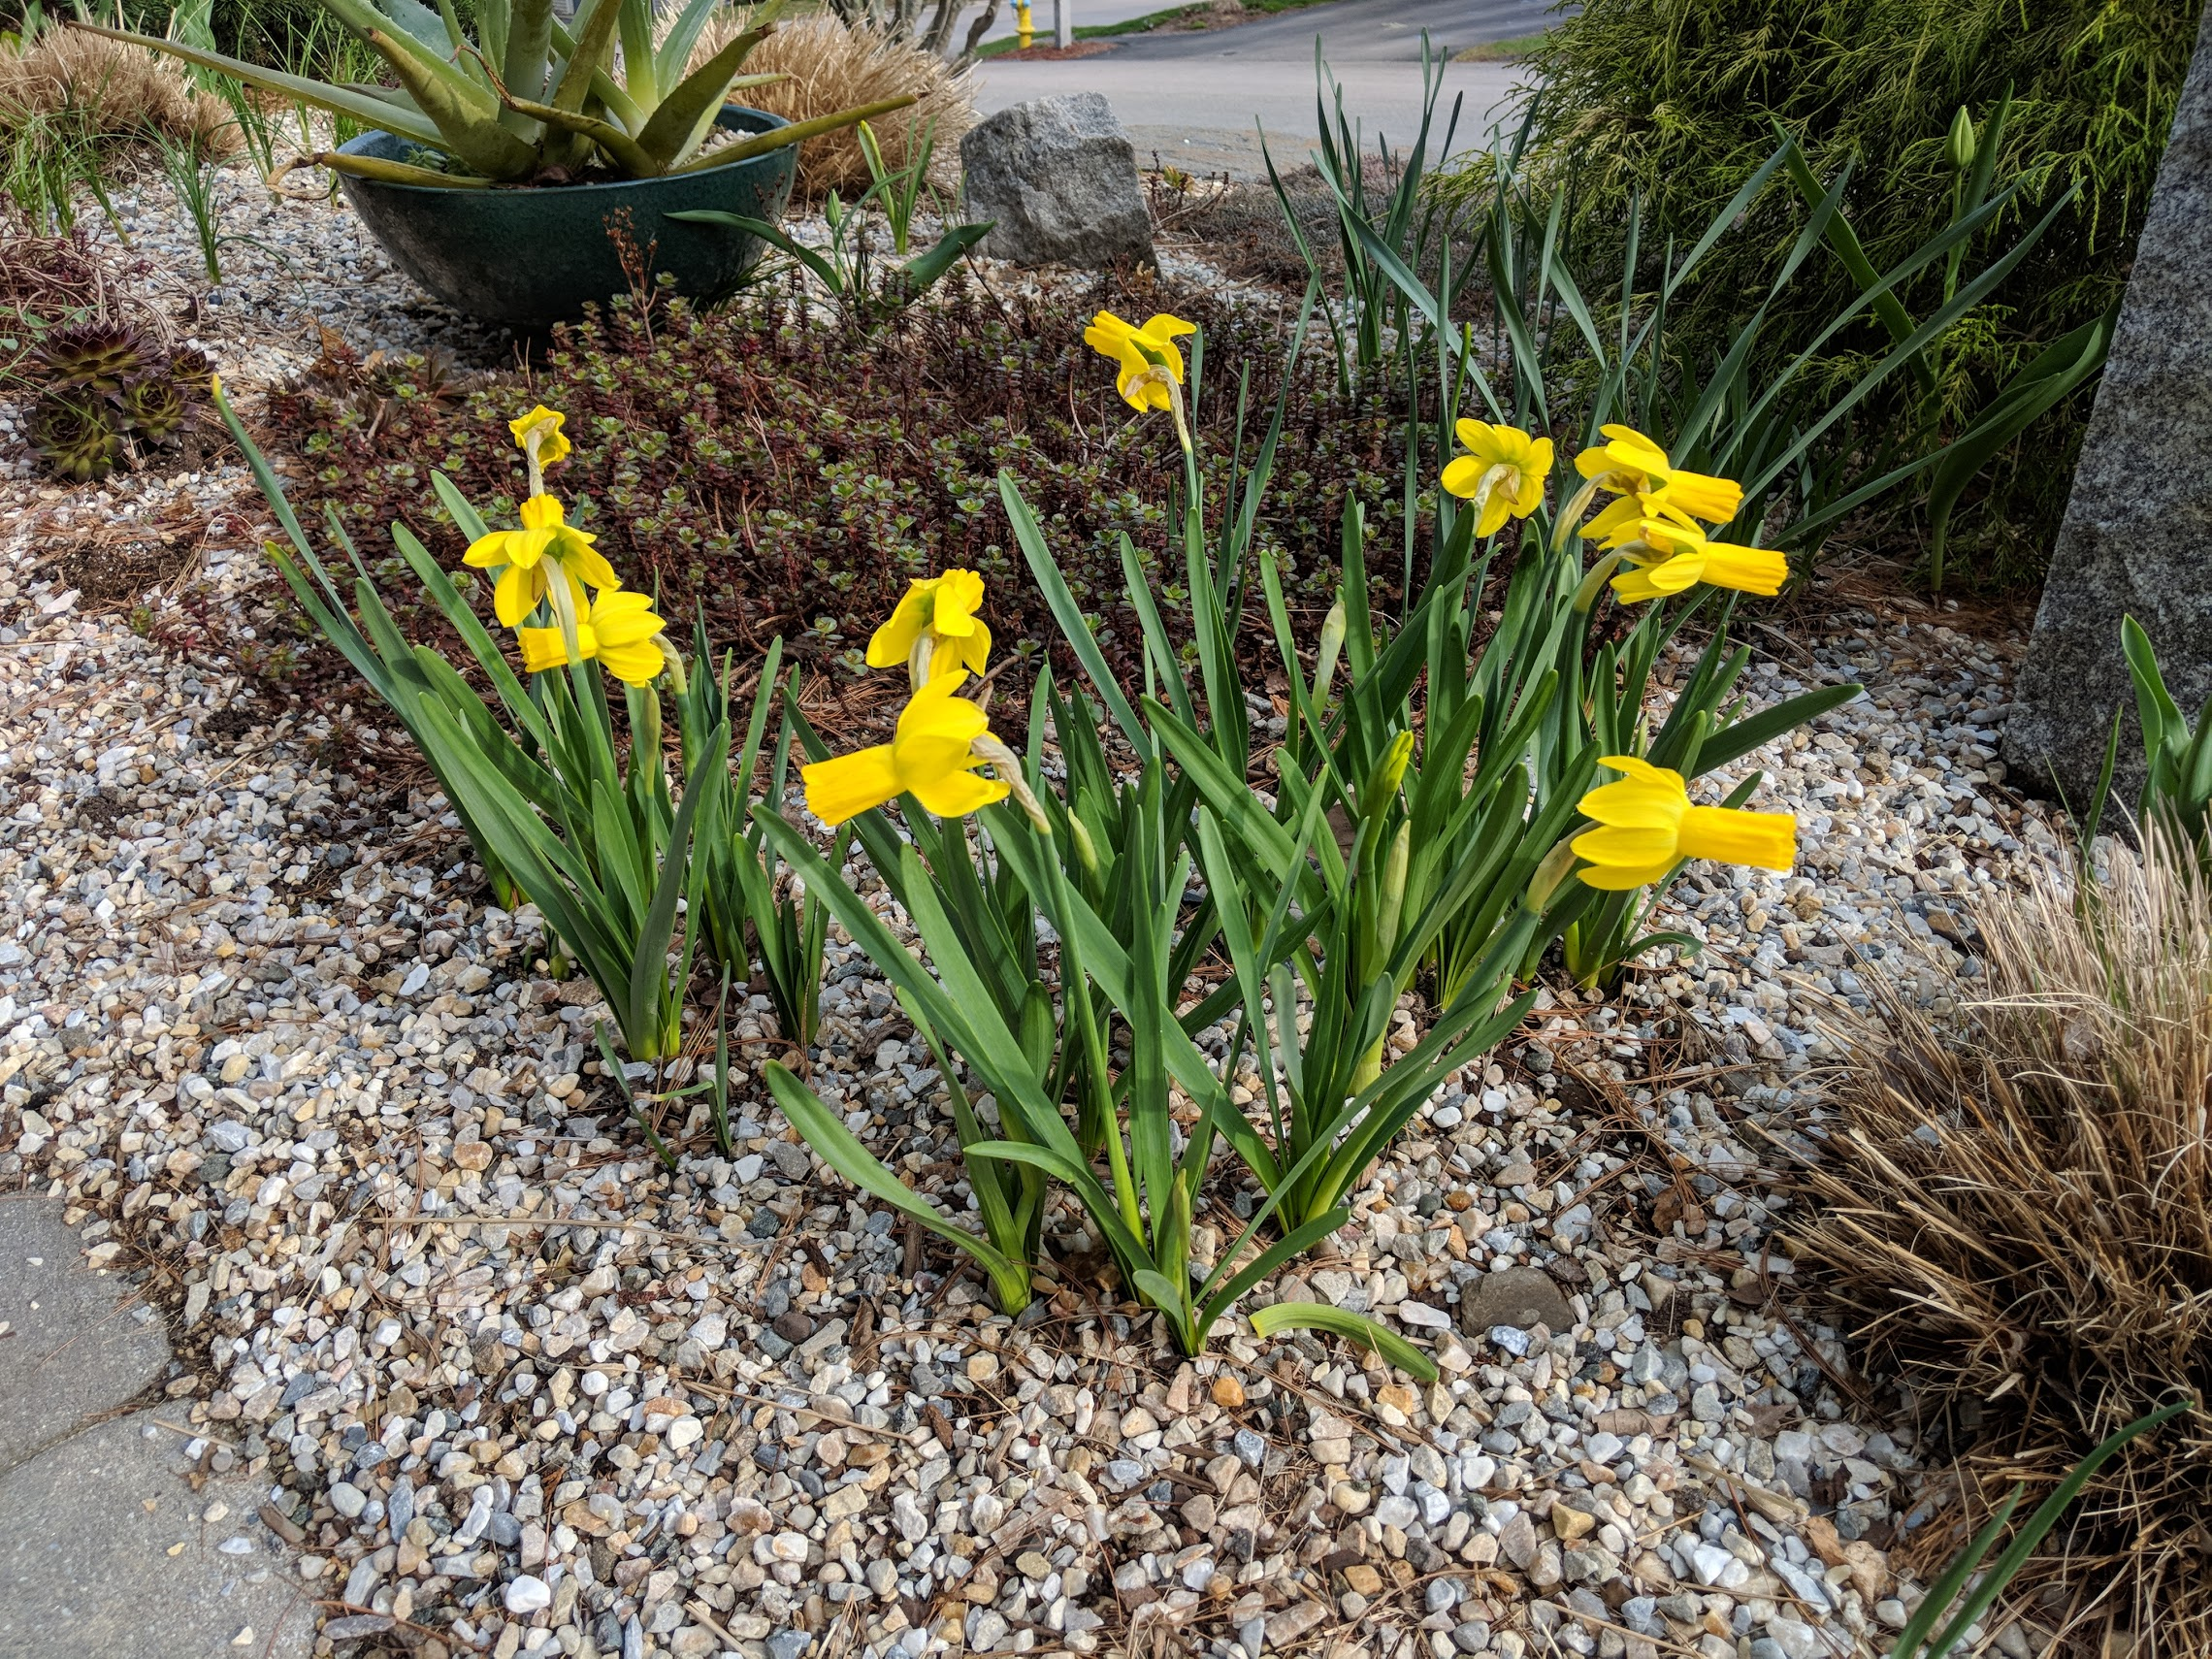 'Rapture' narcissus in the gravel garden. Adjacent ornamental grass will eventually spill over fading daff foliage